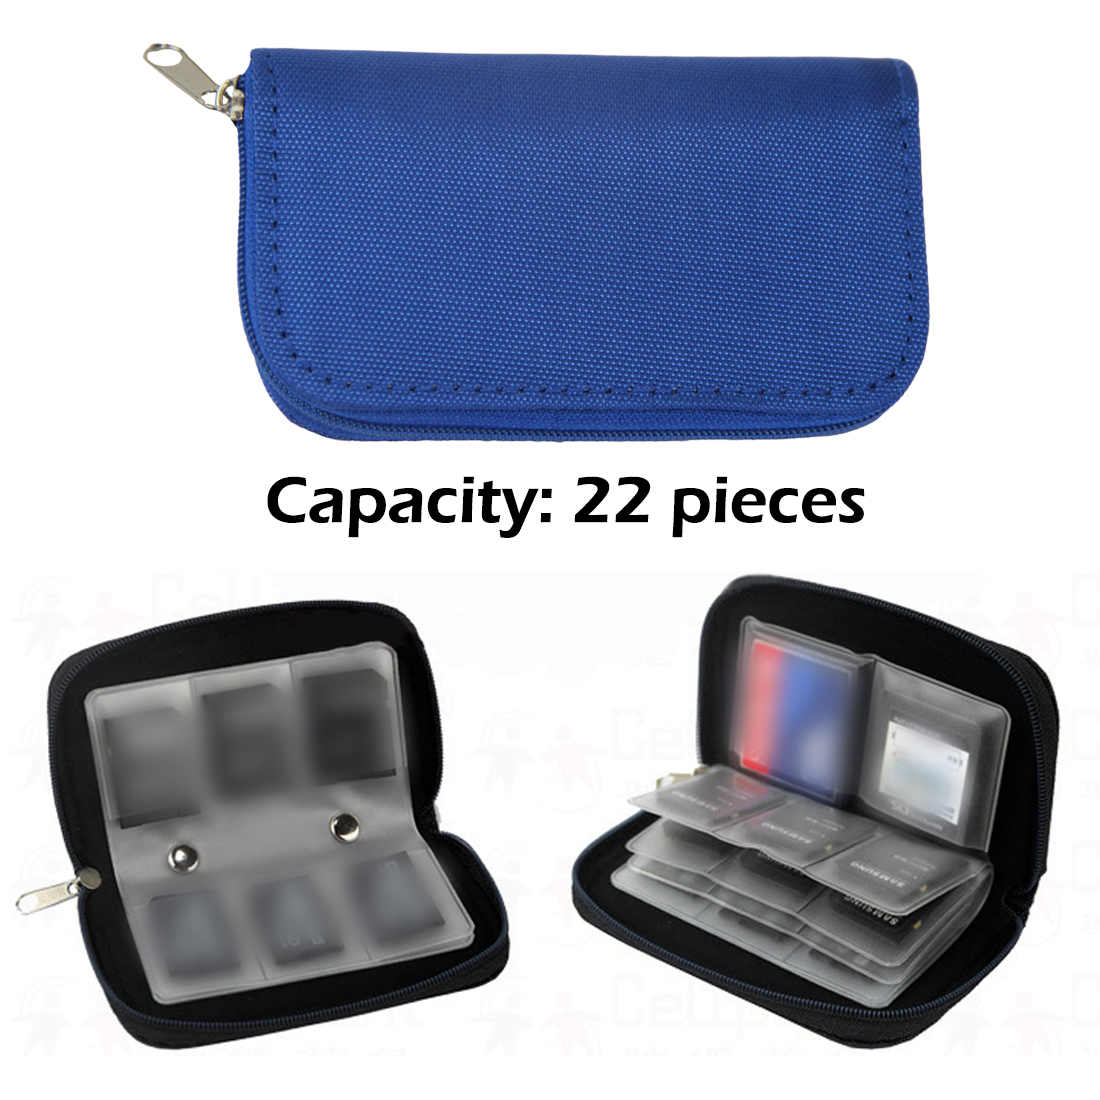 Blue Nylon SD SDHC MMC CF For Micro SD Memory Card Storage Carrying Pouch Bag Box Case Holder Protector Wallet